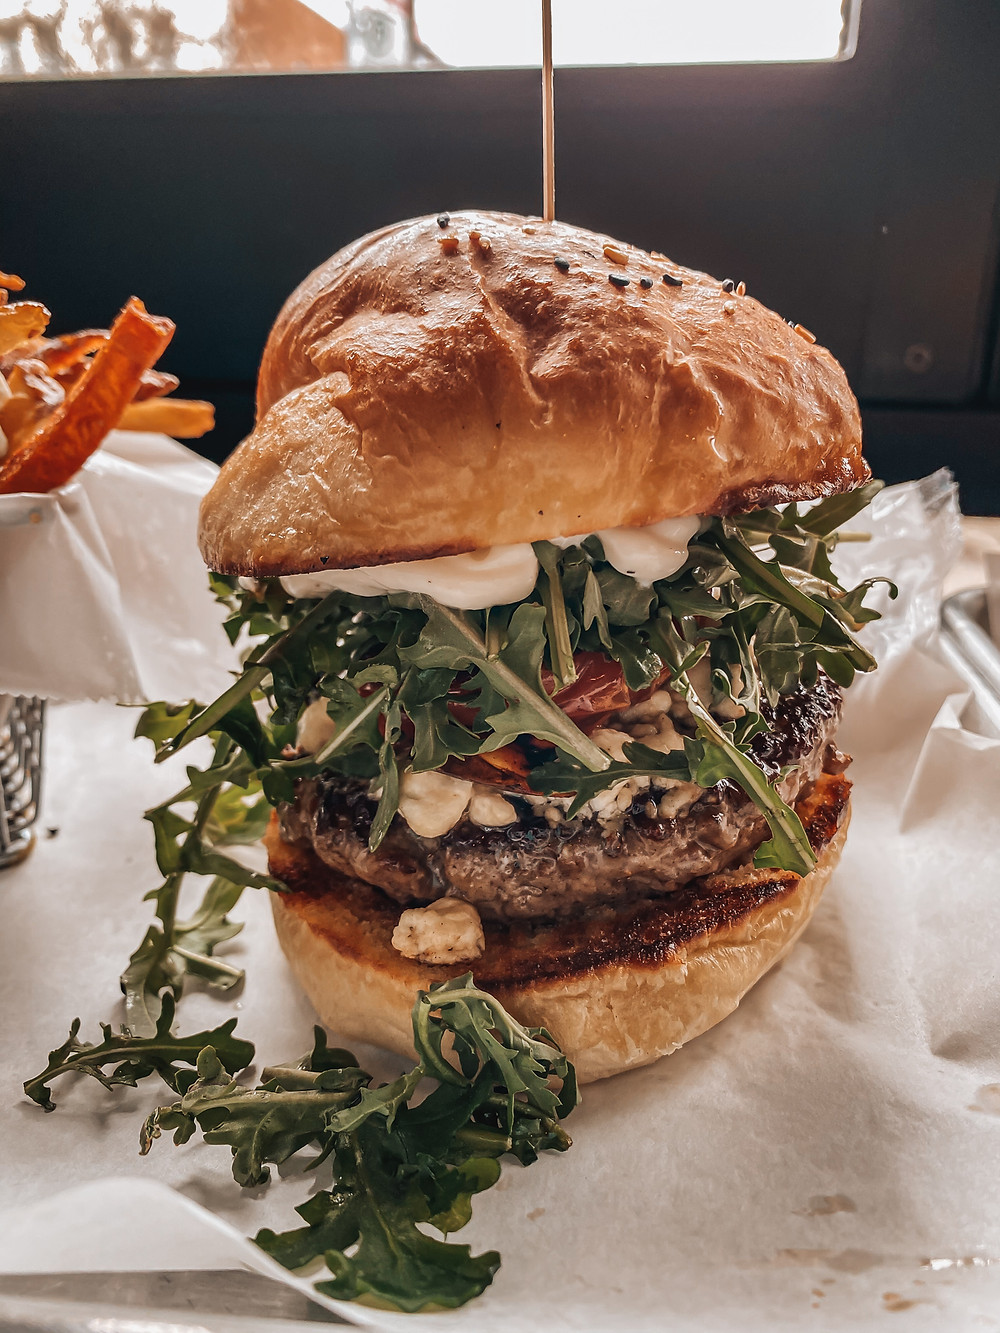 Beautiful burger with arugula, over-roasted tomato and goat cheese with truffle aioli